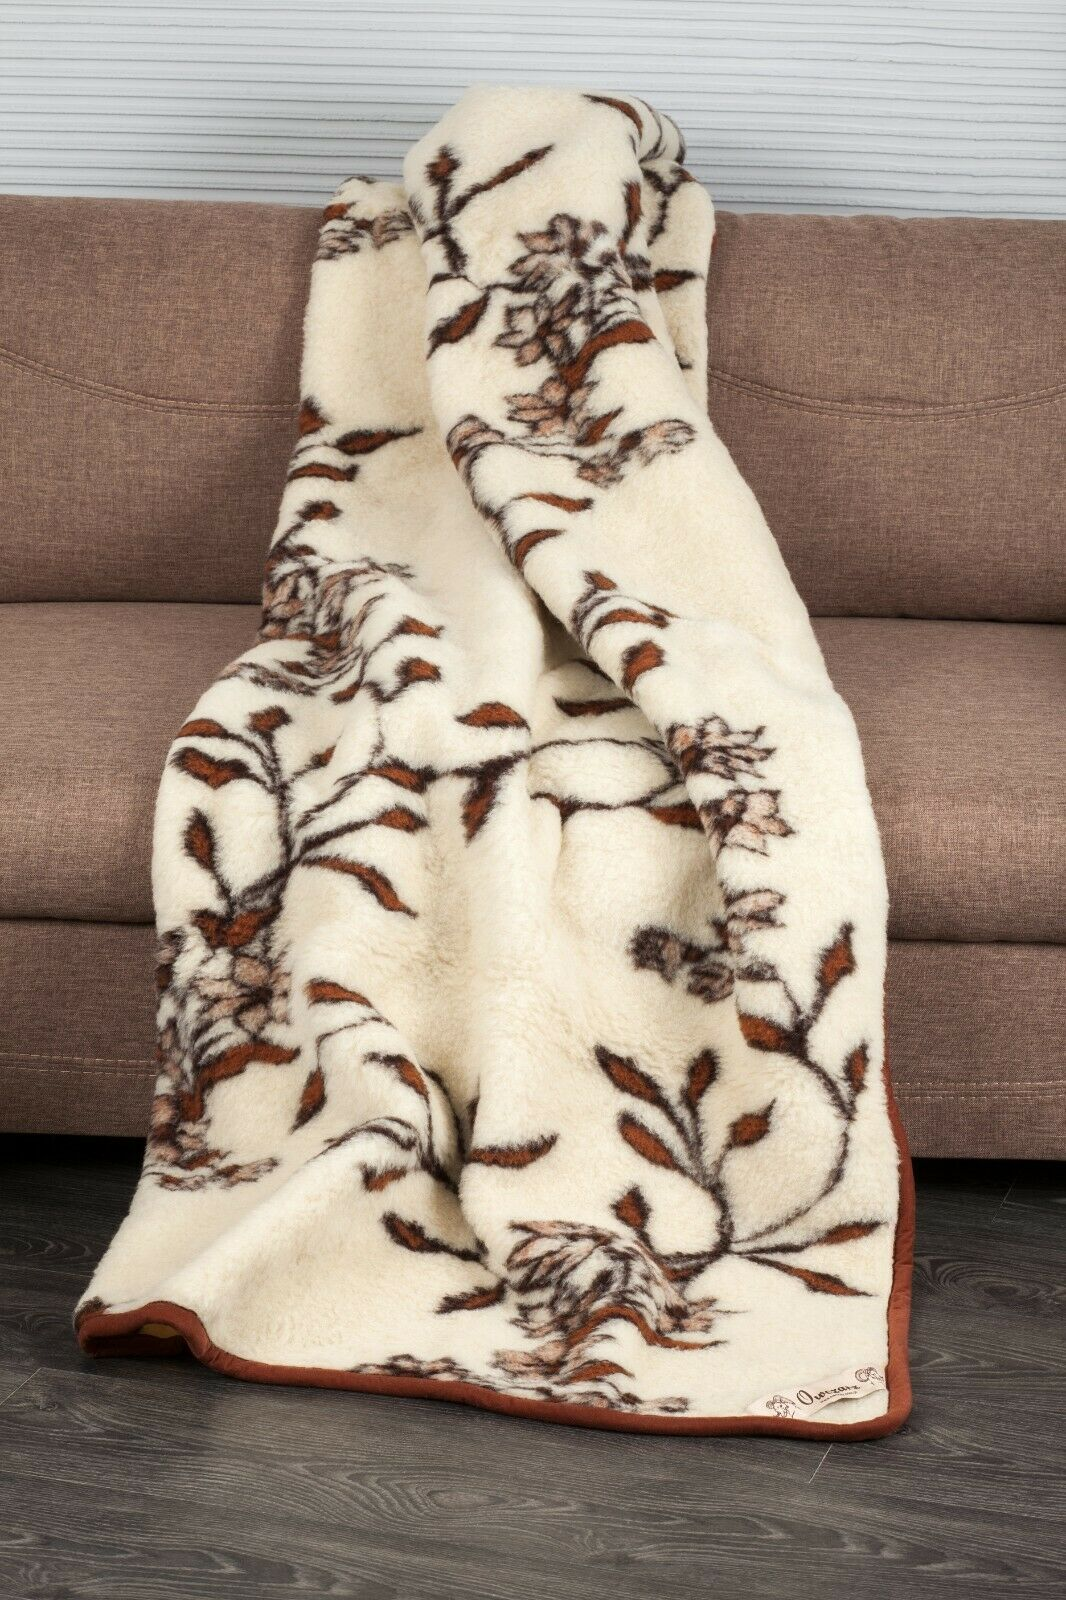 BLANKET 160X180cm DOUBLE LAYER BED FLORAL WOOL MERINO PURE WARM SOFT NATURAL